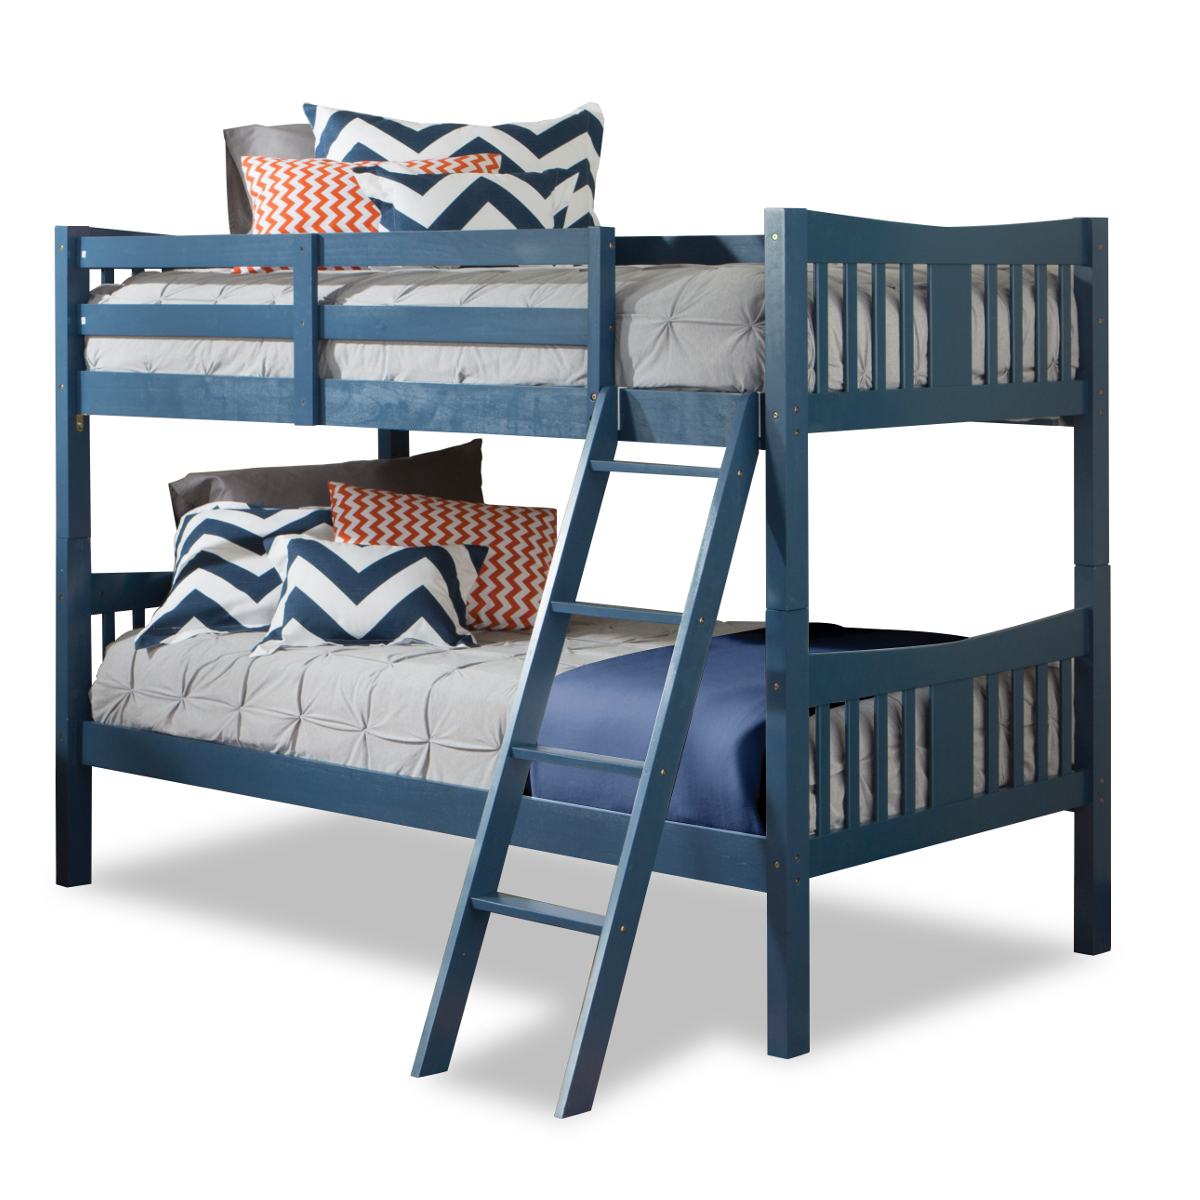 Confidence White Wood Bunk Beds For Kids The Suitable Home